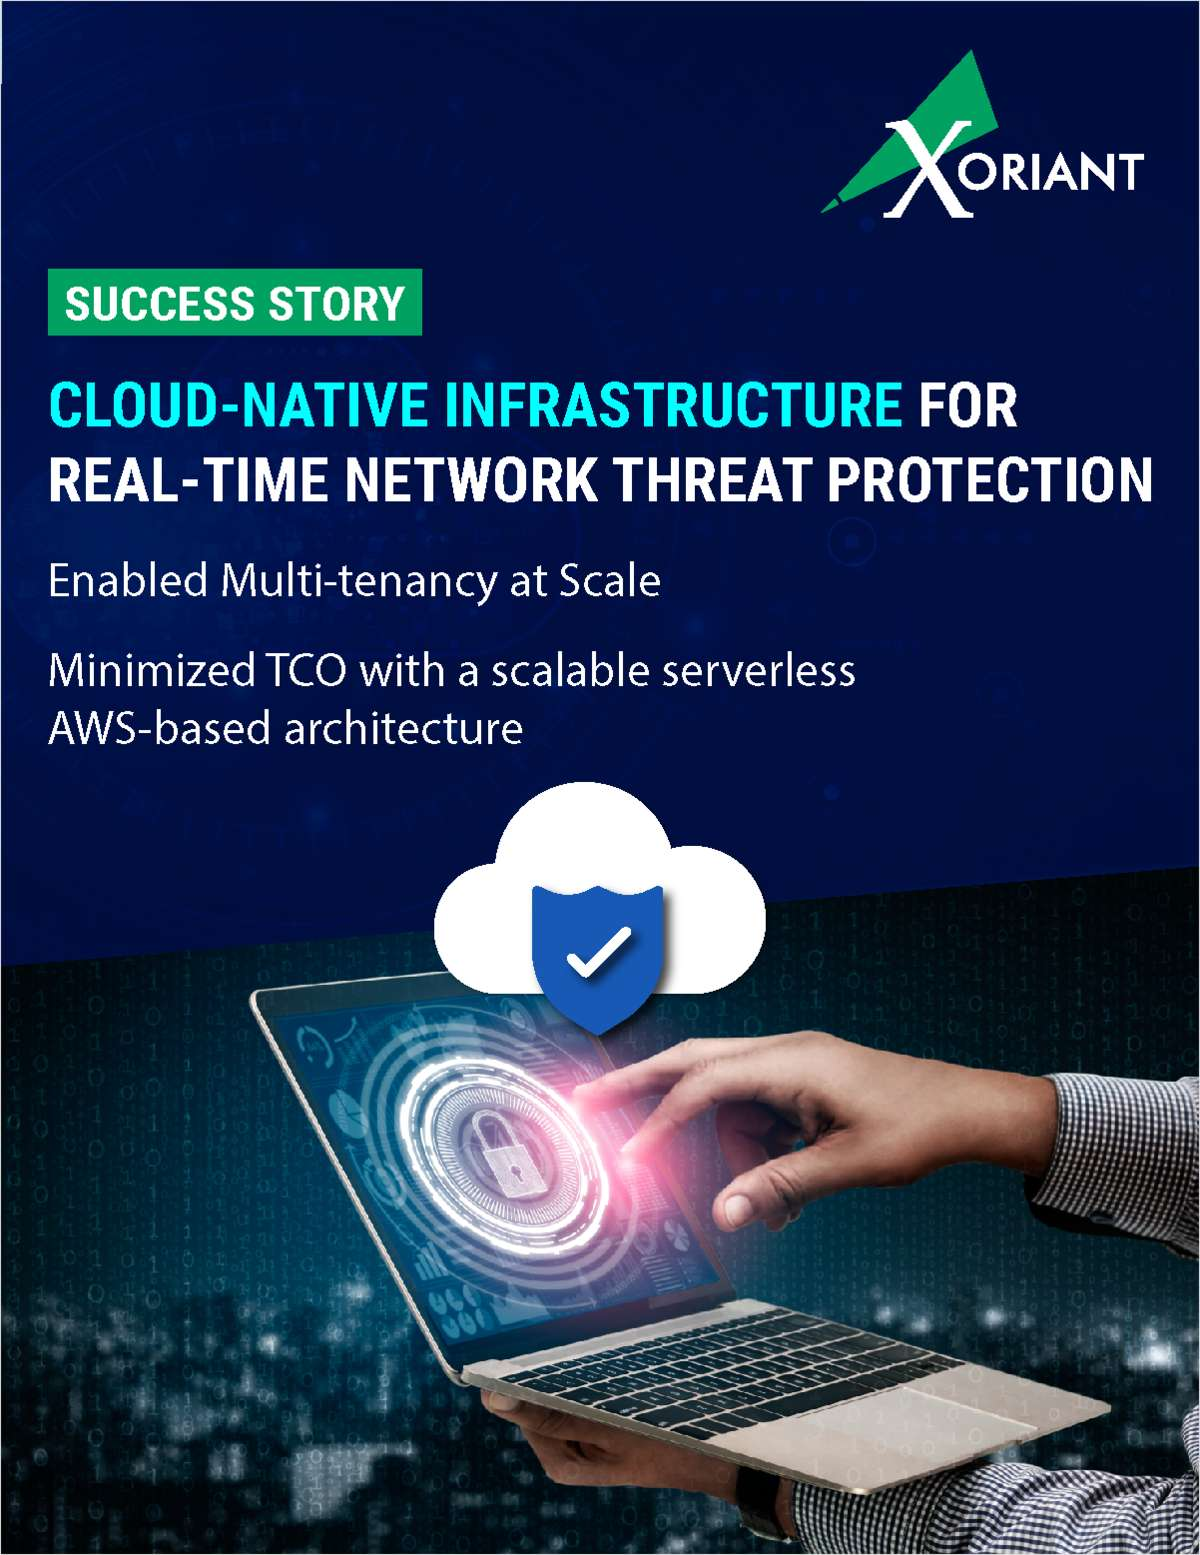 Cloud-Native Infrastructure for Real-Time Network Threat Protection